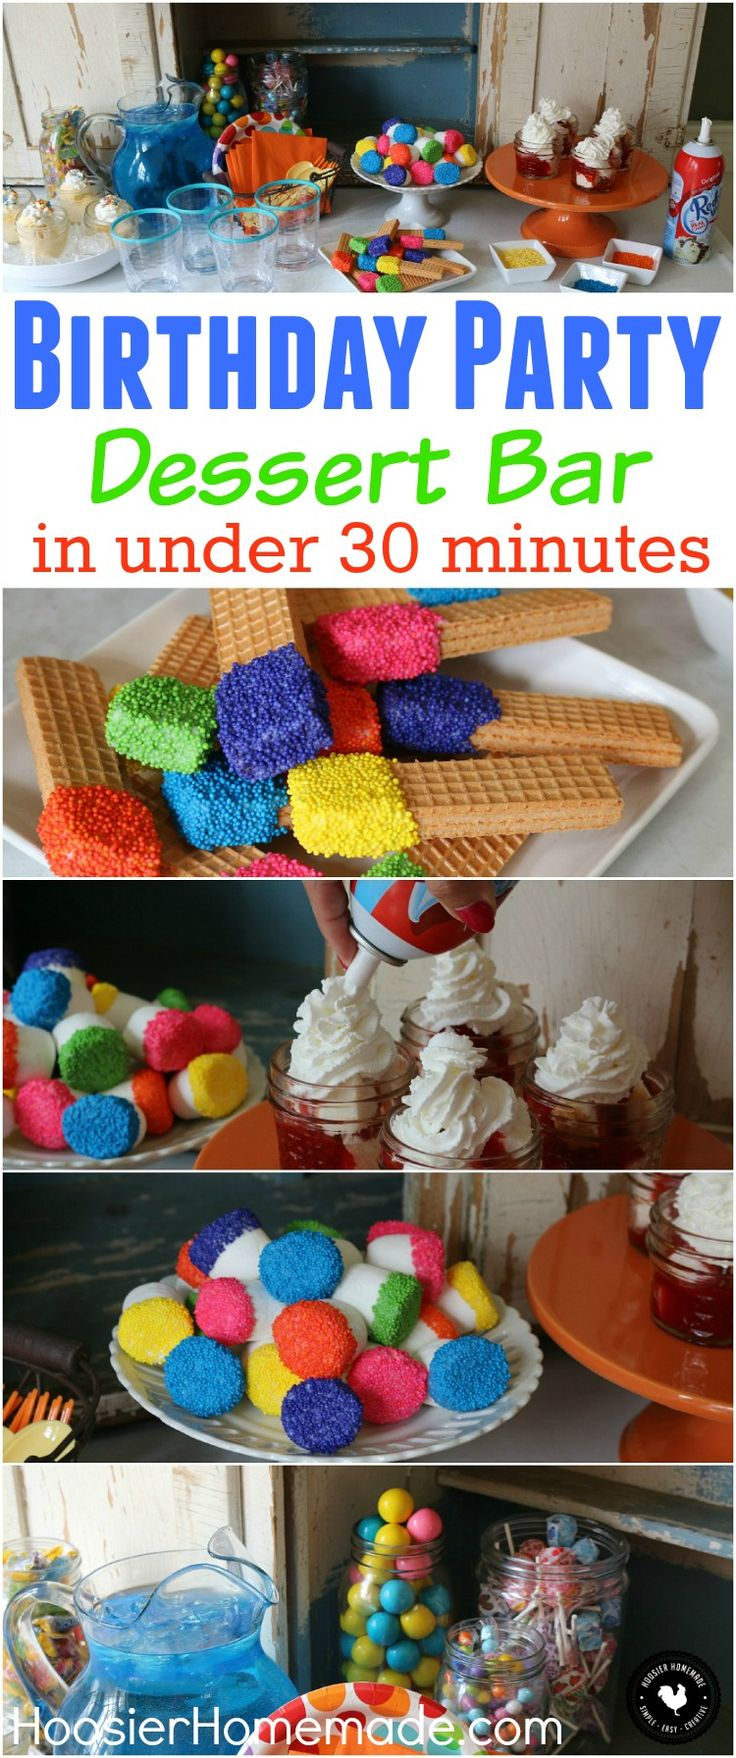 Put together this Easy Kid's Birthday Party in under 30 minutes! No Bake Treats, Marshmallows and Cookies with Sprinkles, Ice Cream, and lots of lots of Sprinkles! Learn how easy it is AND budget friendly! Be sure to pin to your Birthday Party Board to save it! #PartyReddi #ad